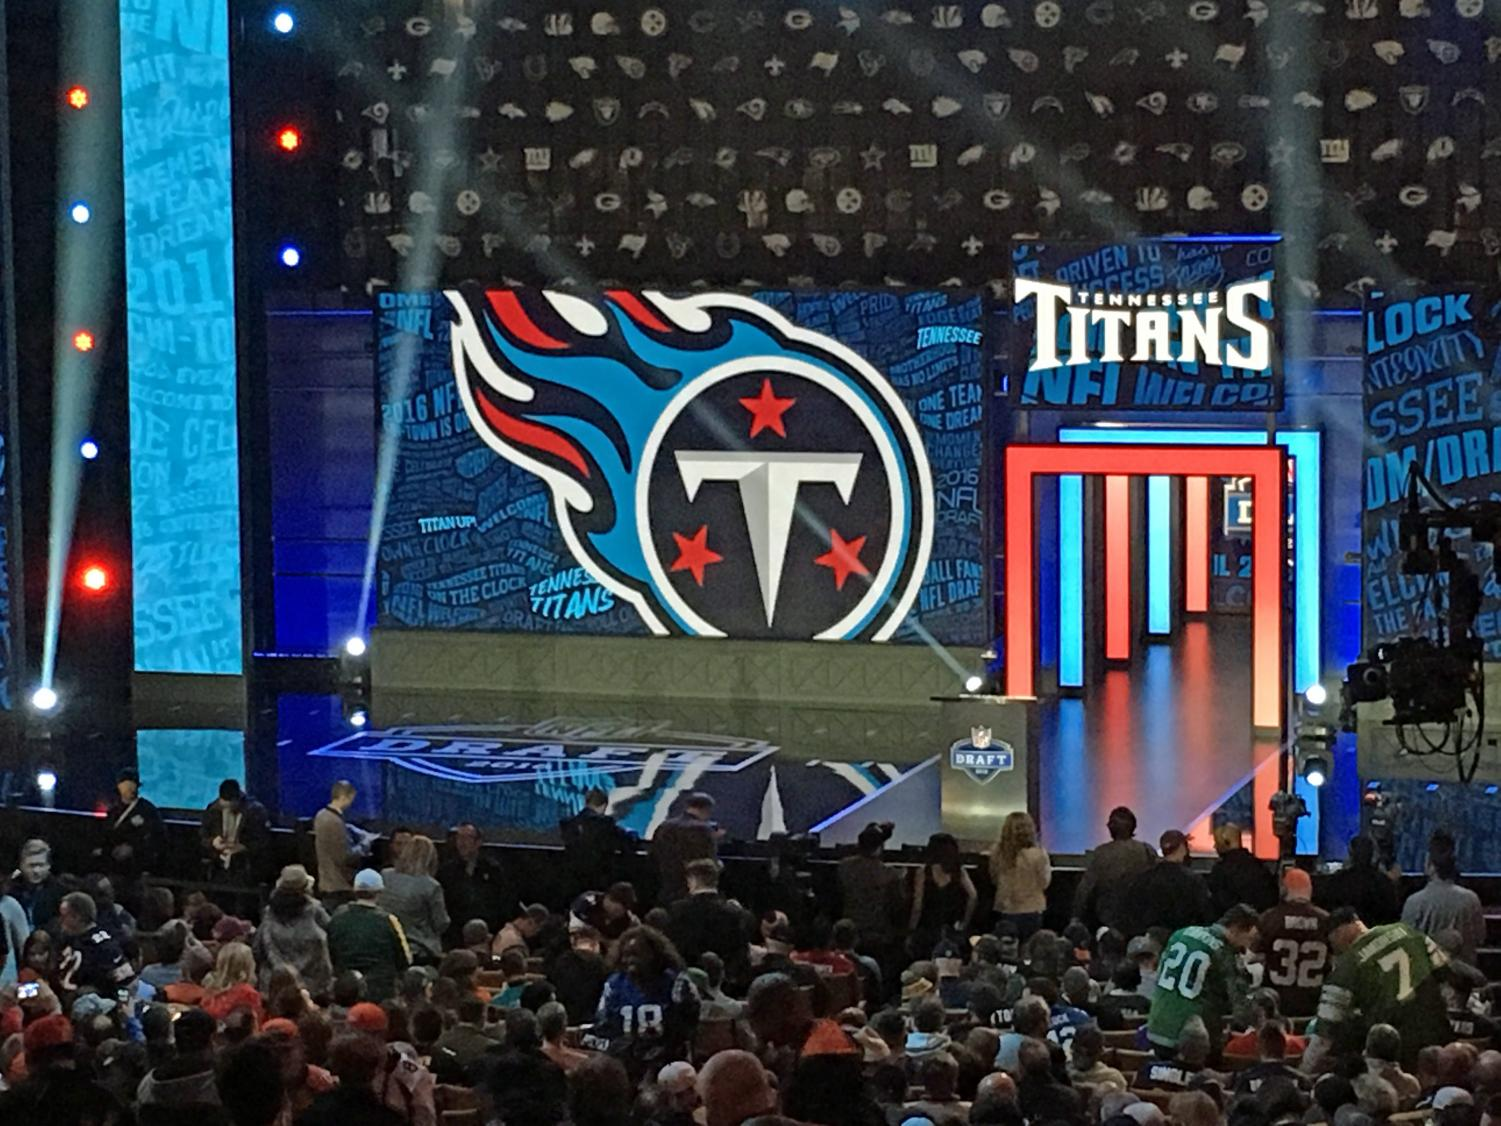 The Titans pick at the 2016 NFL Draft in Chicago, Illinois.